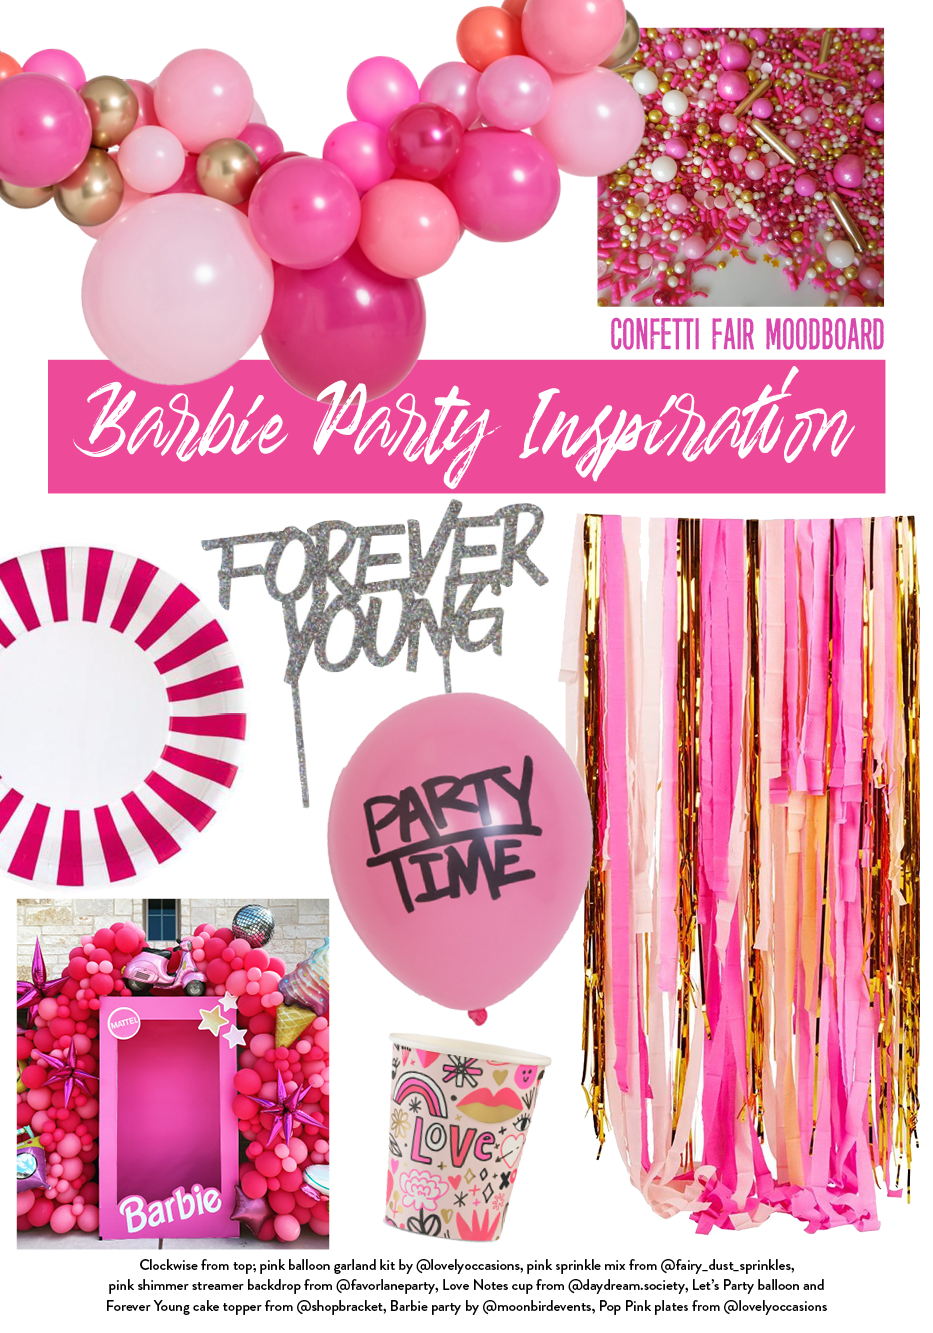 Best Barbie party ideas - products